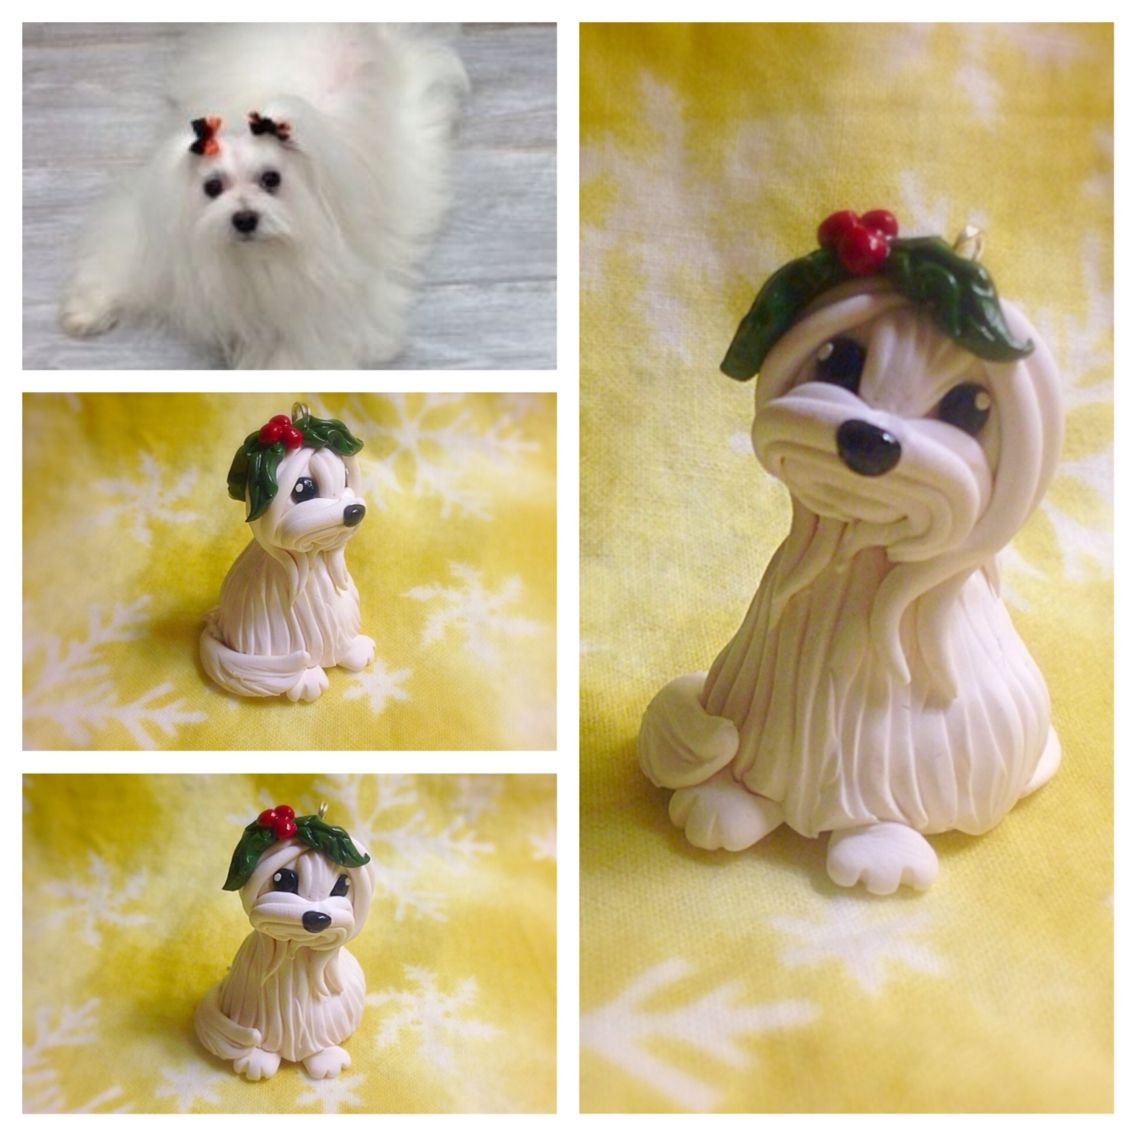 Maltese christmas ornaments - Maltese Dog With Holly Christmas Ornament Handmade From Sculpey Premo Polymer Clay To Inquire